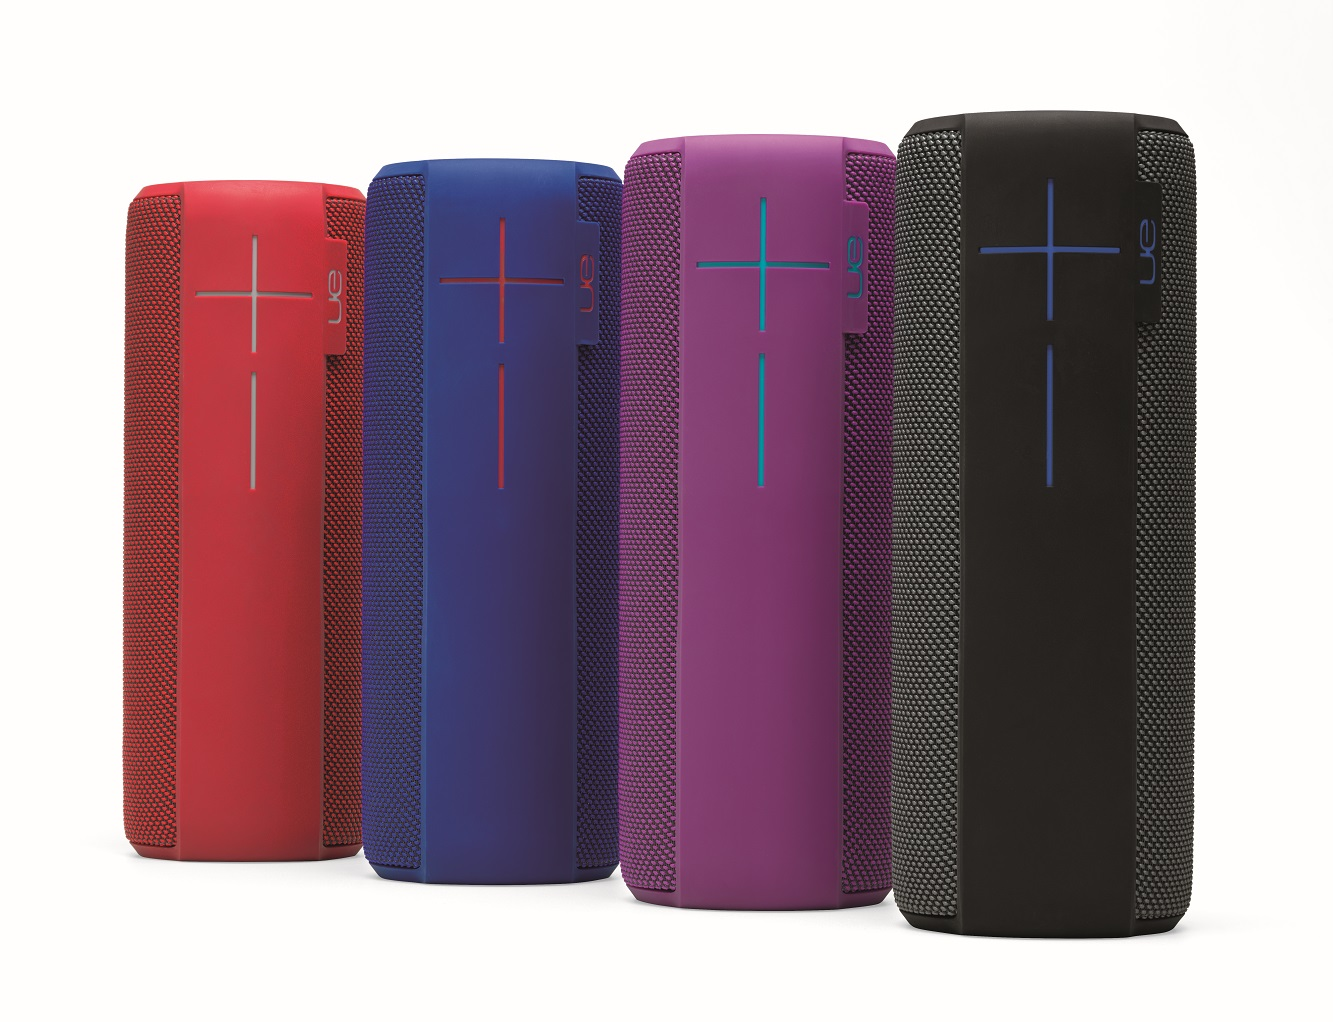 Ultimate Ears expands Speaker Range with New UE MEGABOOM - Irish